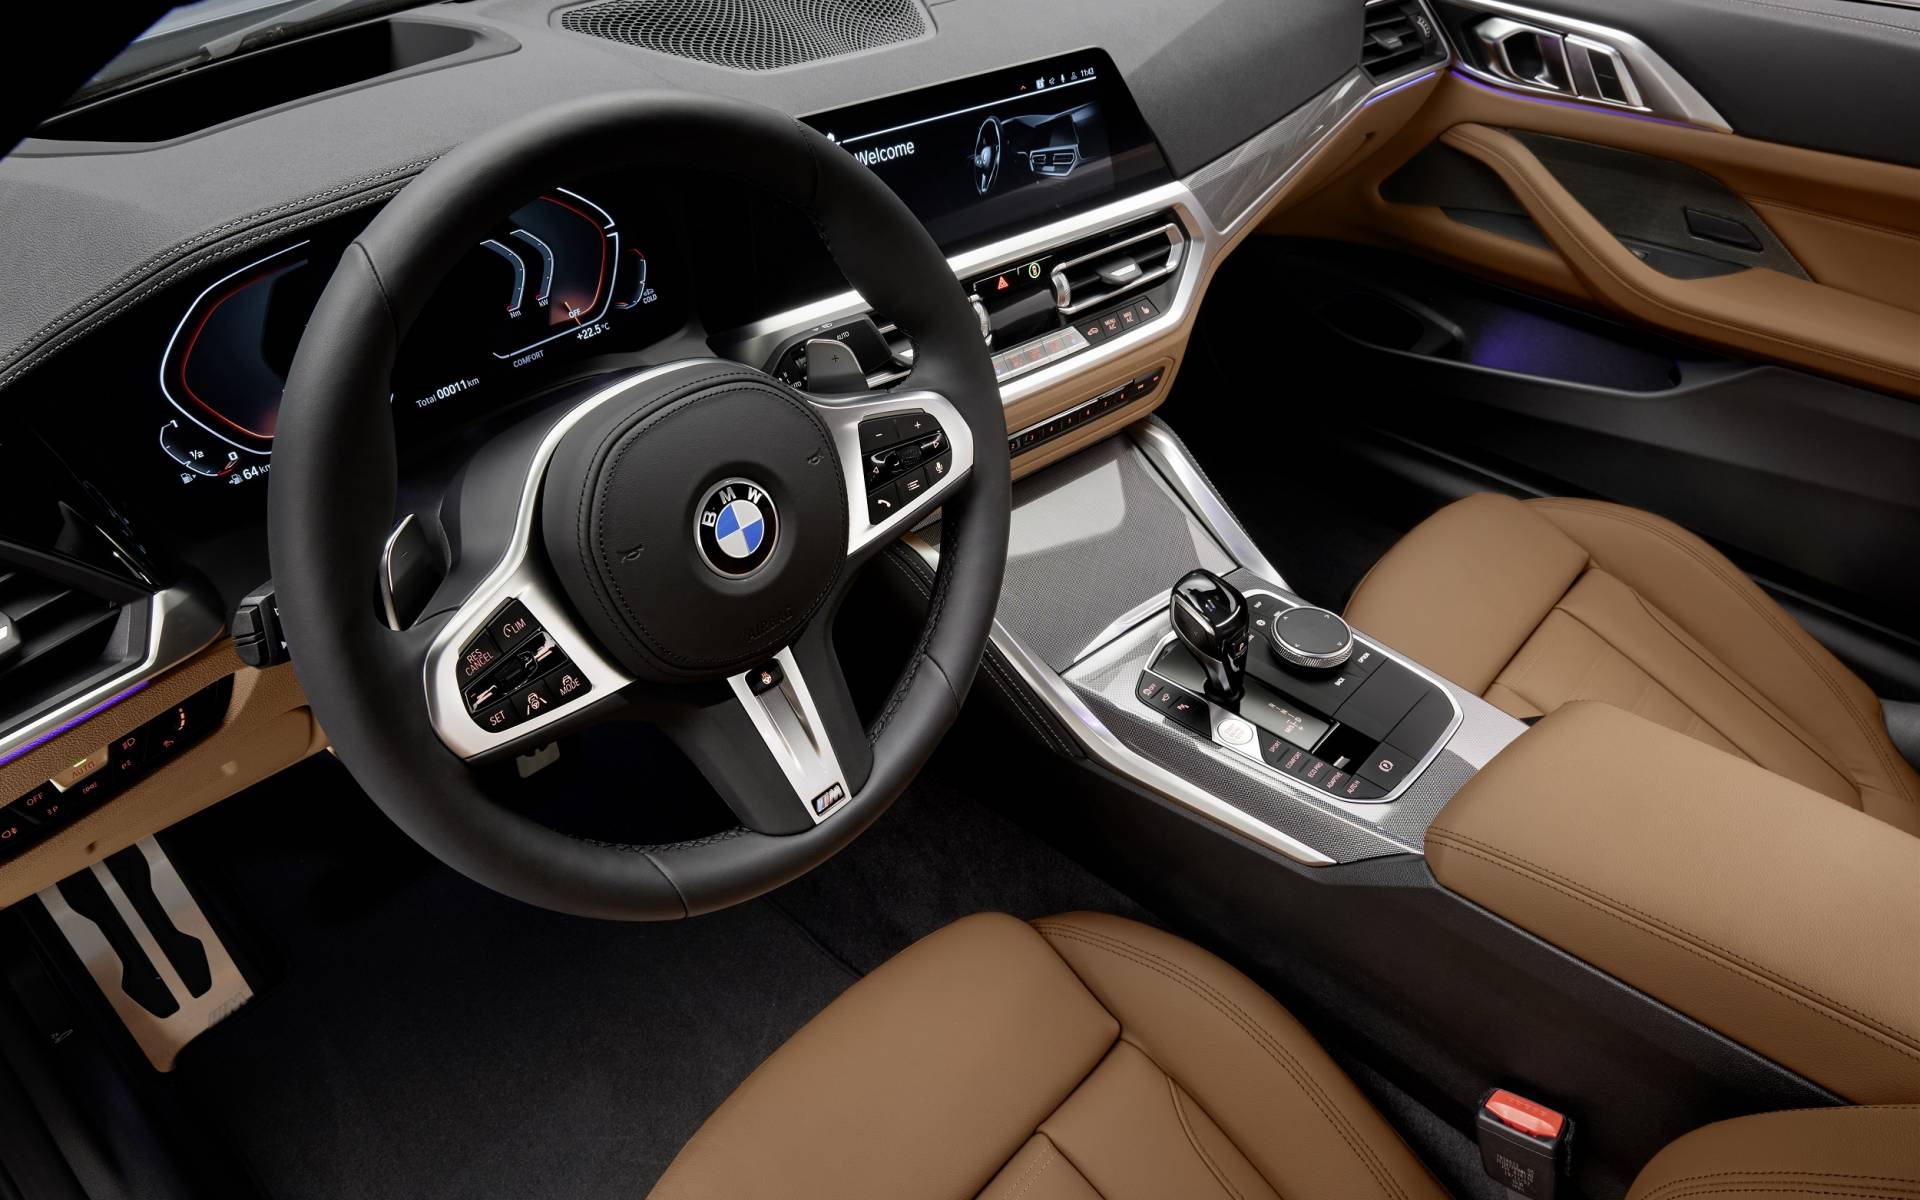 2021 Bmw 4 Series Unveiled With More Power Giant Grille The Car Guide